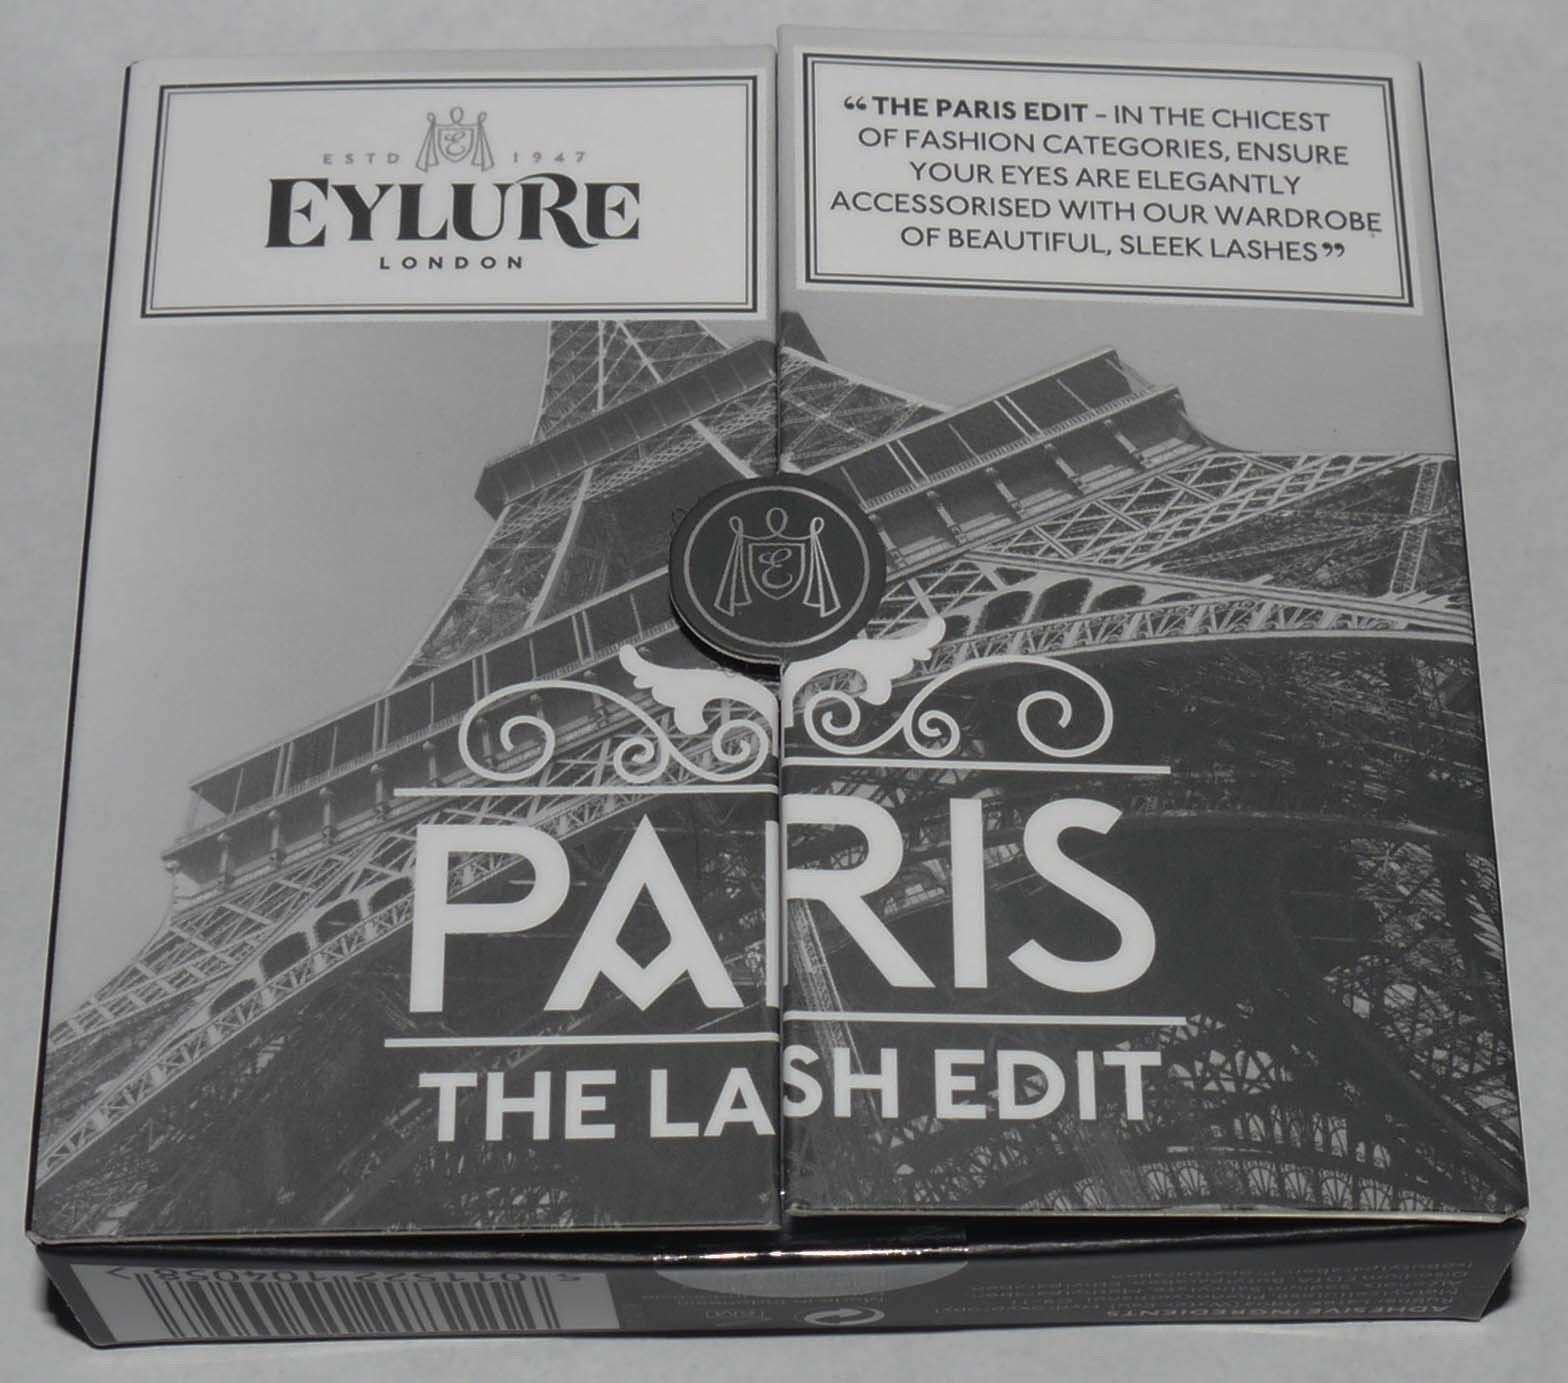 Eylure London Set of 3 The Lash Edit - Paris Re-Usable False Eye Lashes 13832